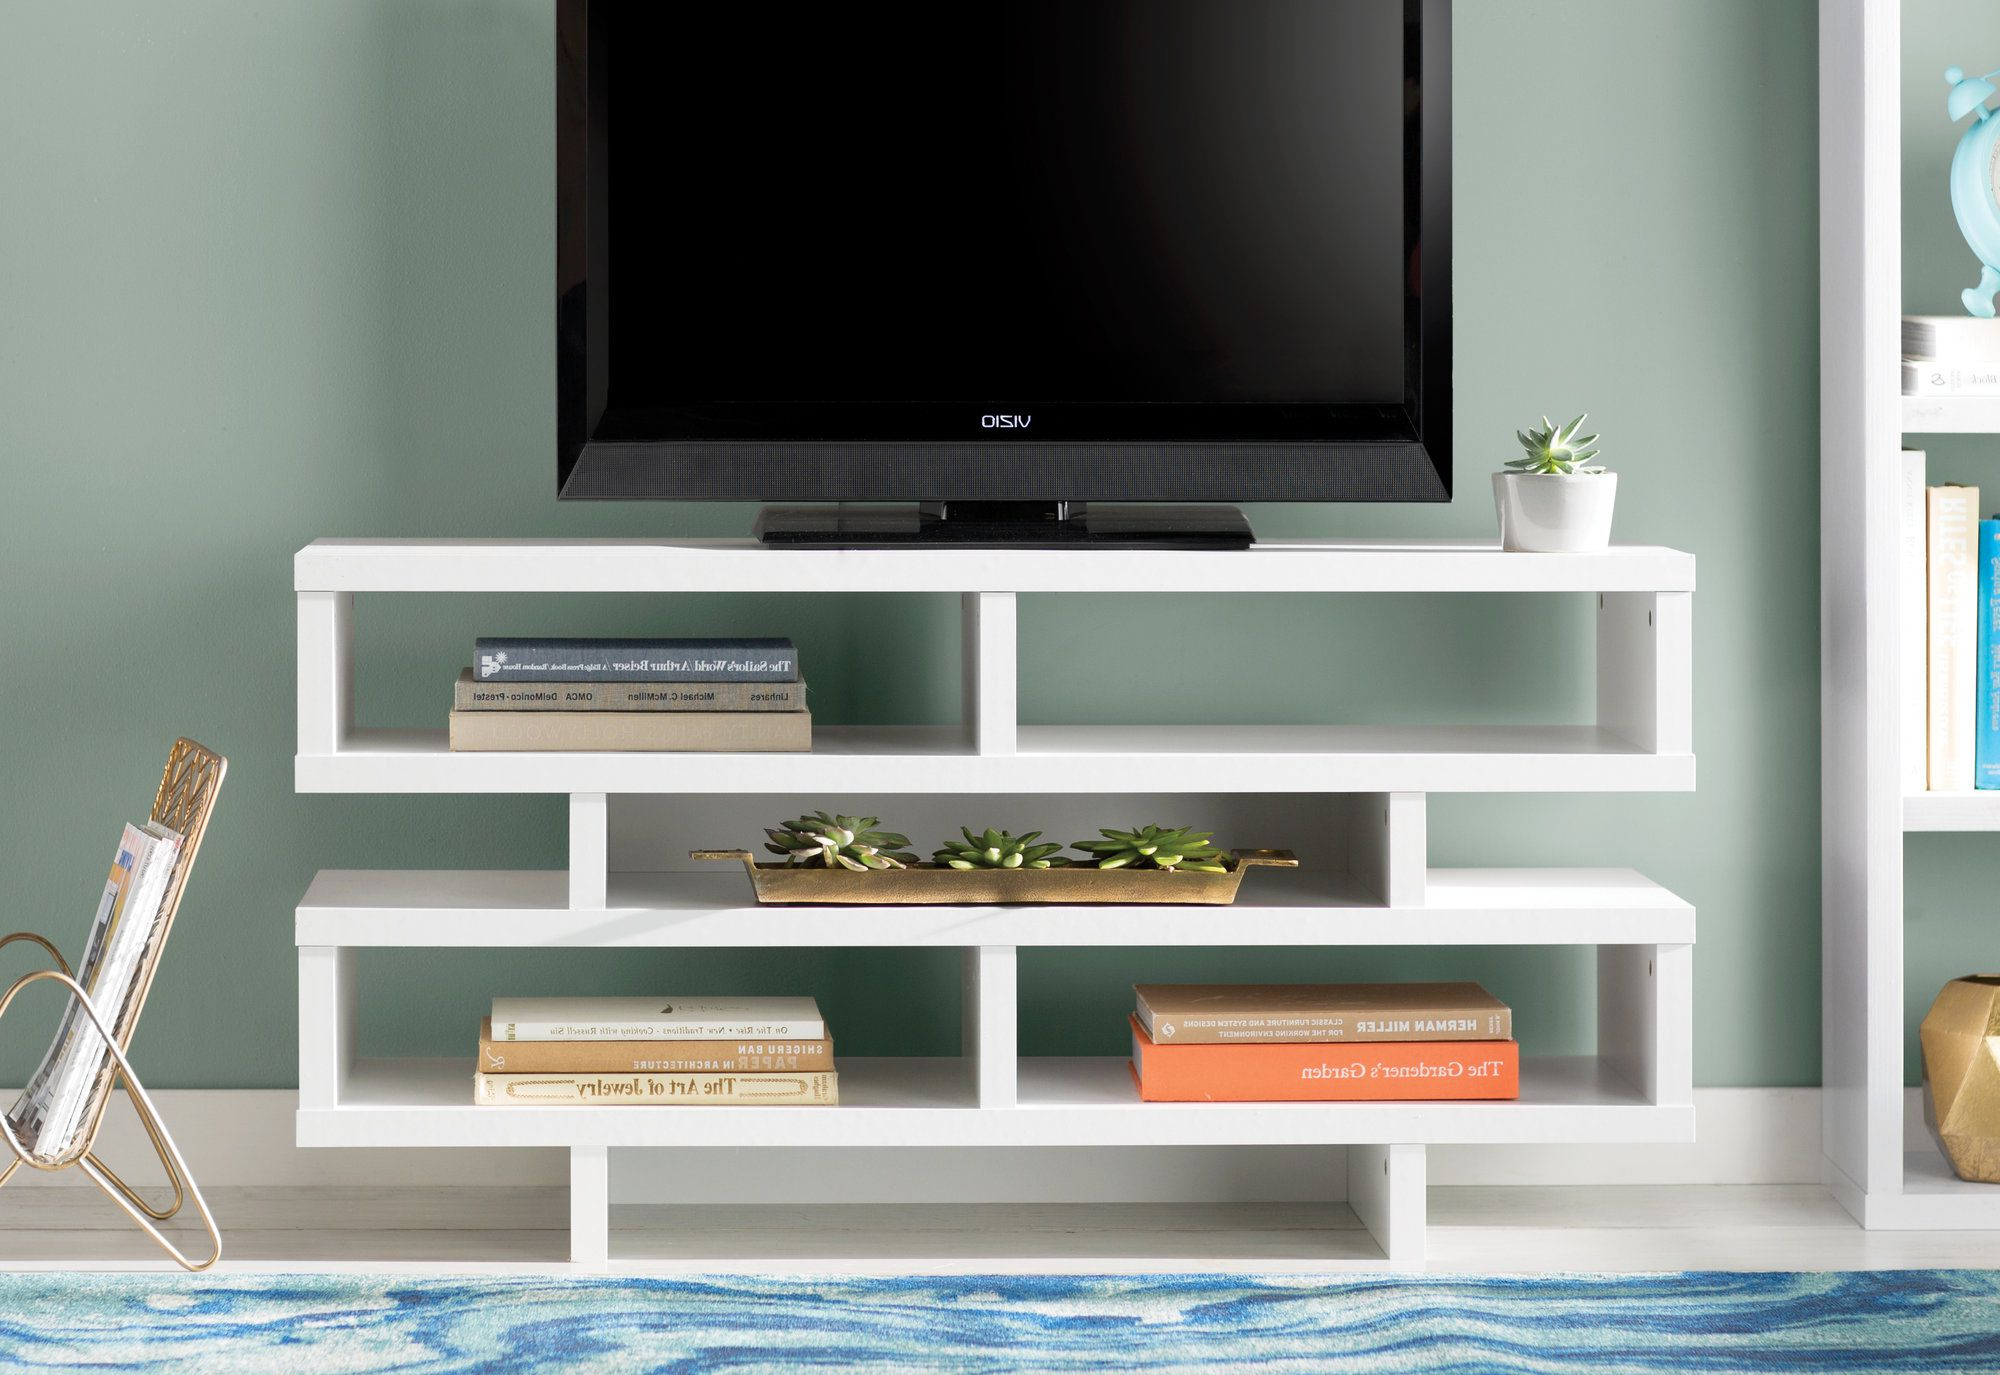 Rowan Media Console | Products | Pinterest | Tv Stands And Products Inside Rowan 64 Inch Tv Stands (Gallery 3 of 20)